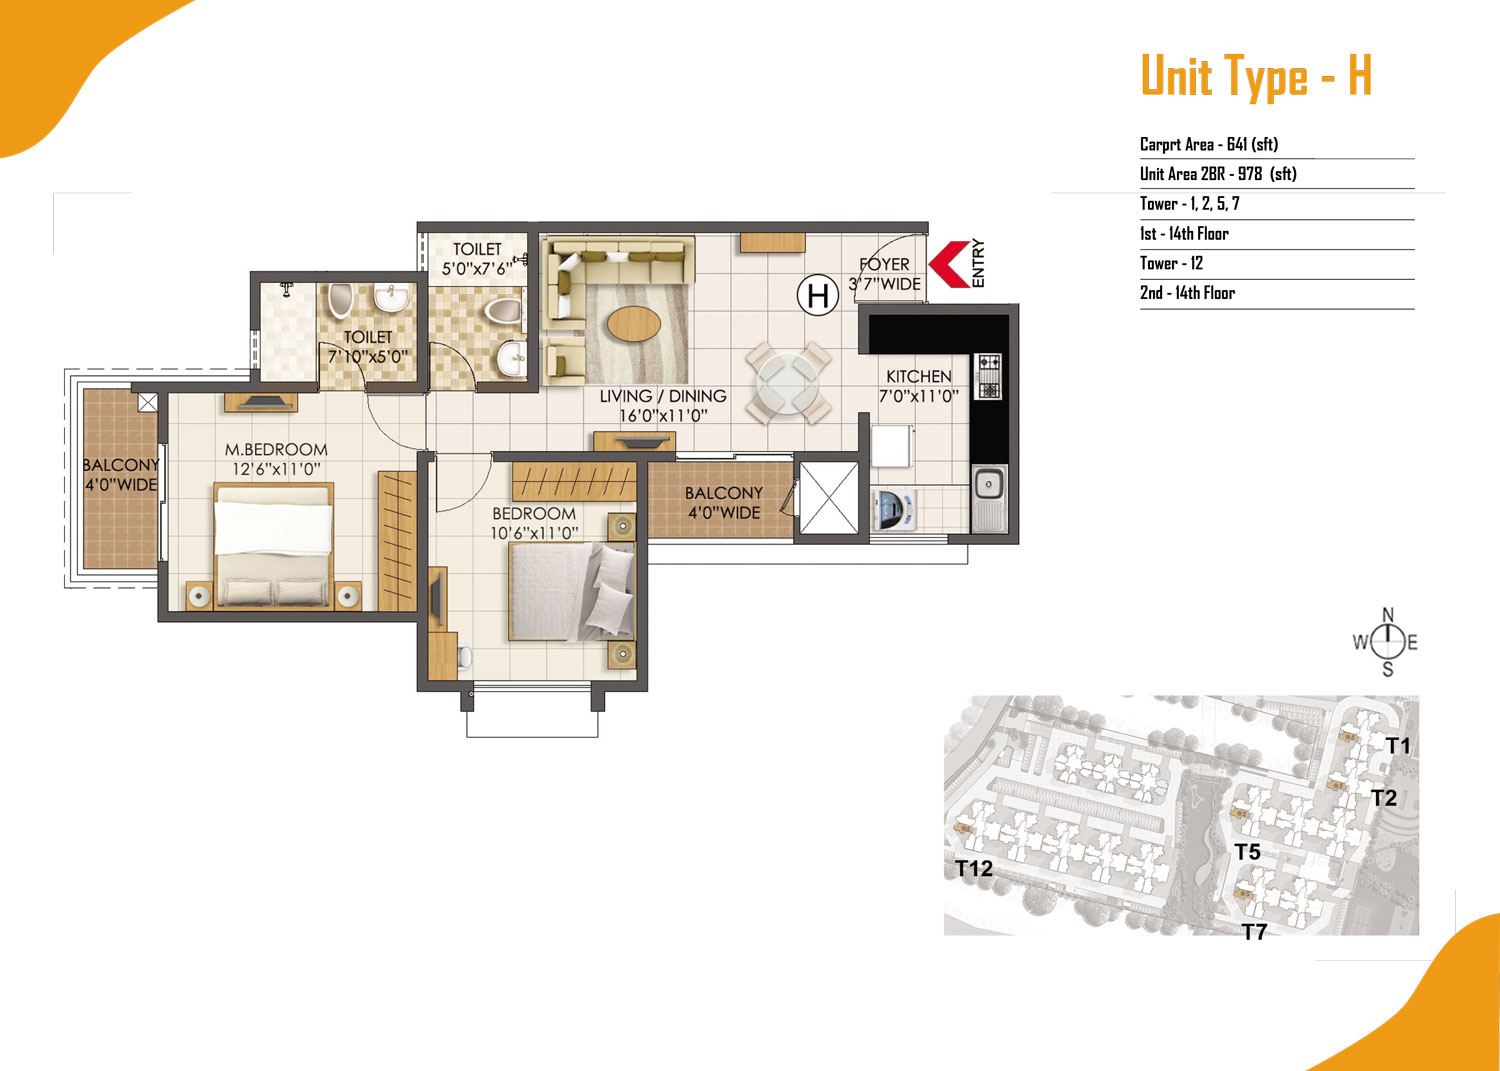 Type H - 2 Bed - 978 Sq Ft